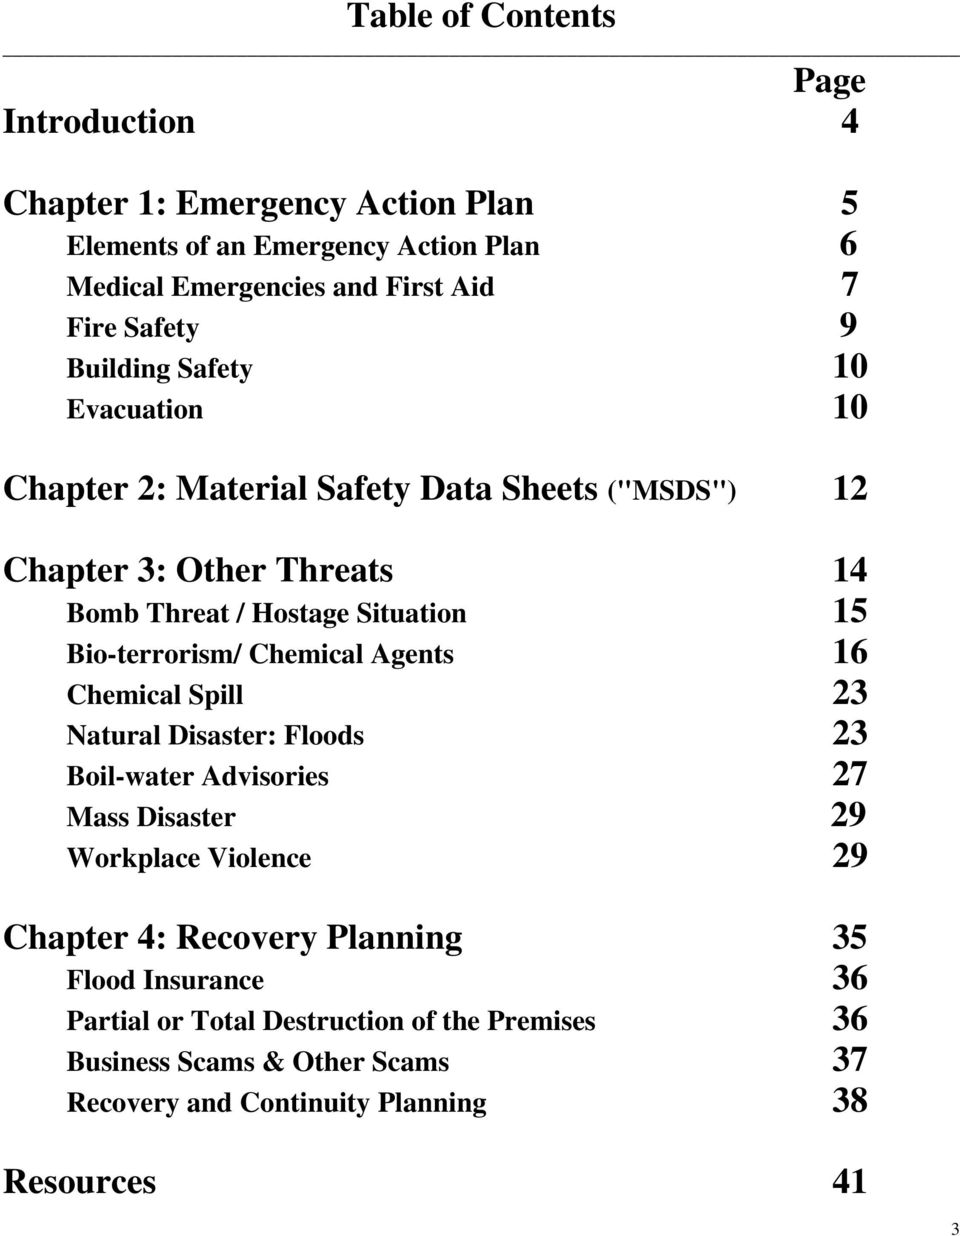 Bio-terrorism/ Chemical Agents 16 Chemical Spill 23 Natural Disaster: Floods 23 Boil-water Advisories 27 Mass Disaster 29 Workplace Violence 29 Chapter 4: